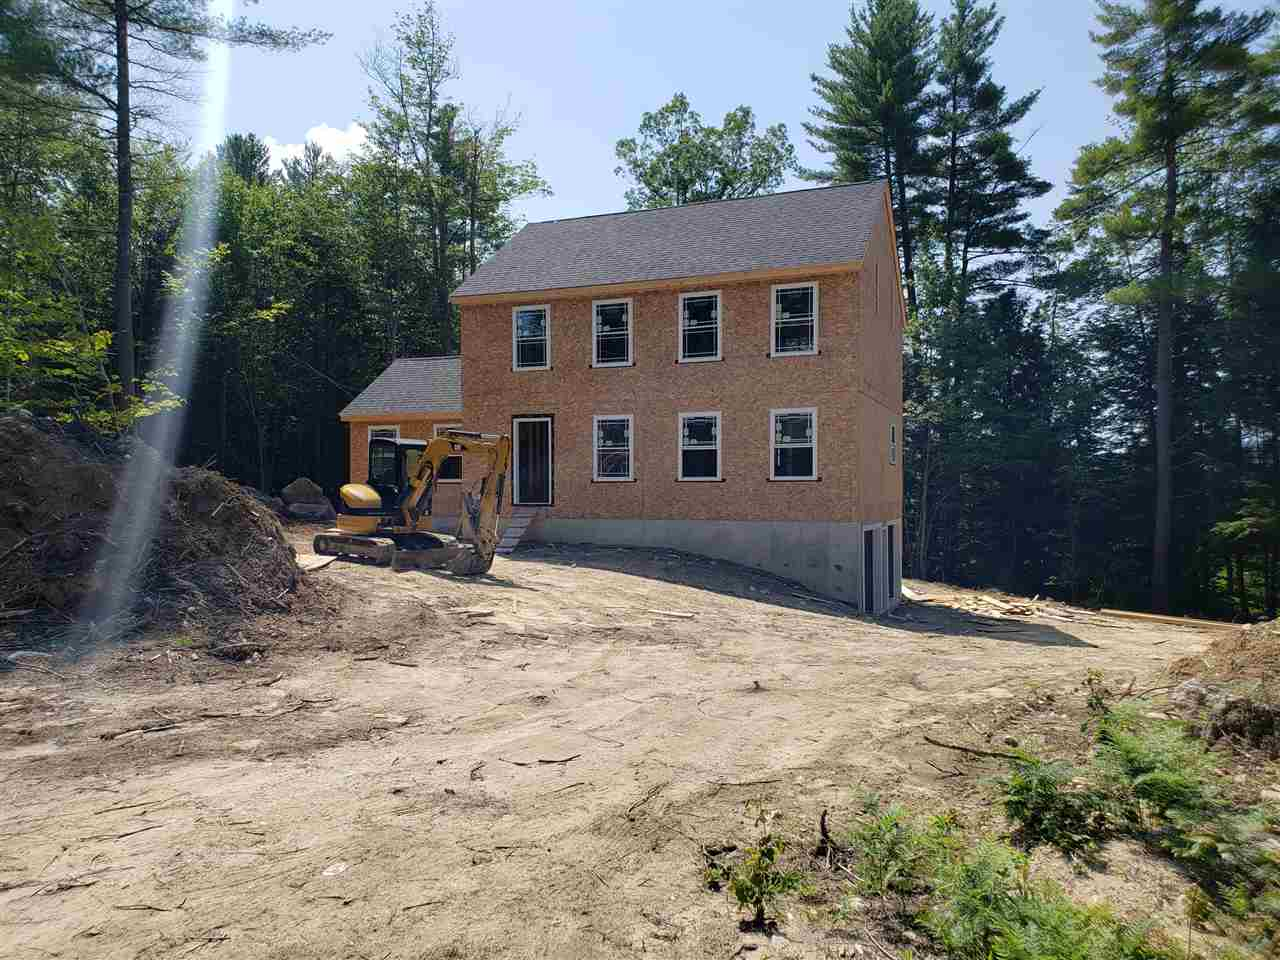 Photo of 67 Chestnut Drive Allenstown NH 03275